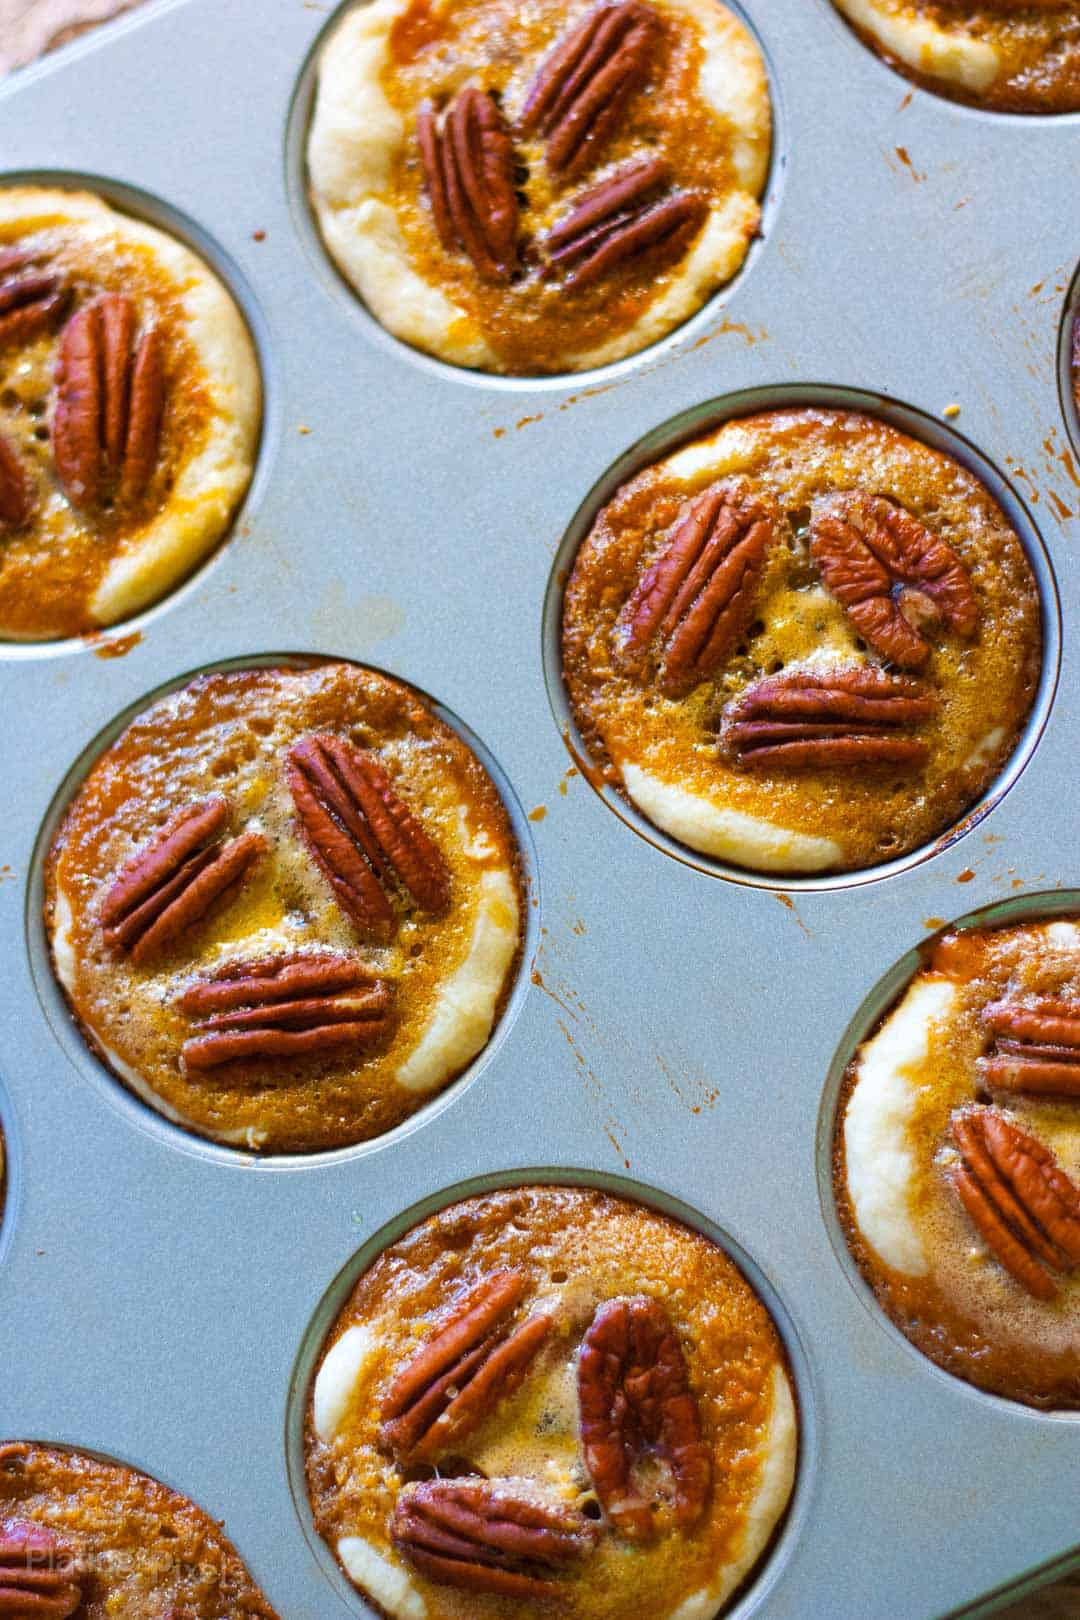 Just baked Pecan Tassies in a muffin pan